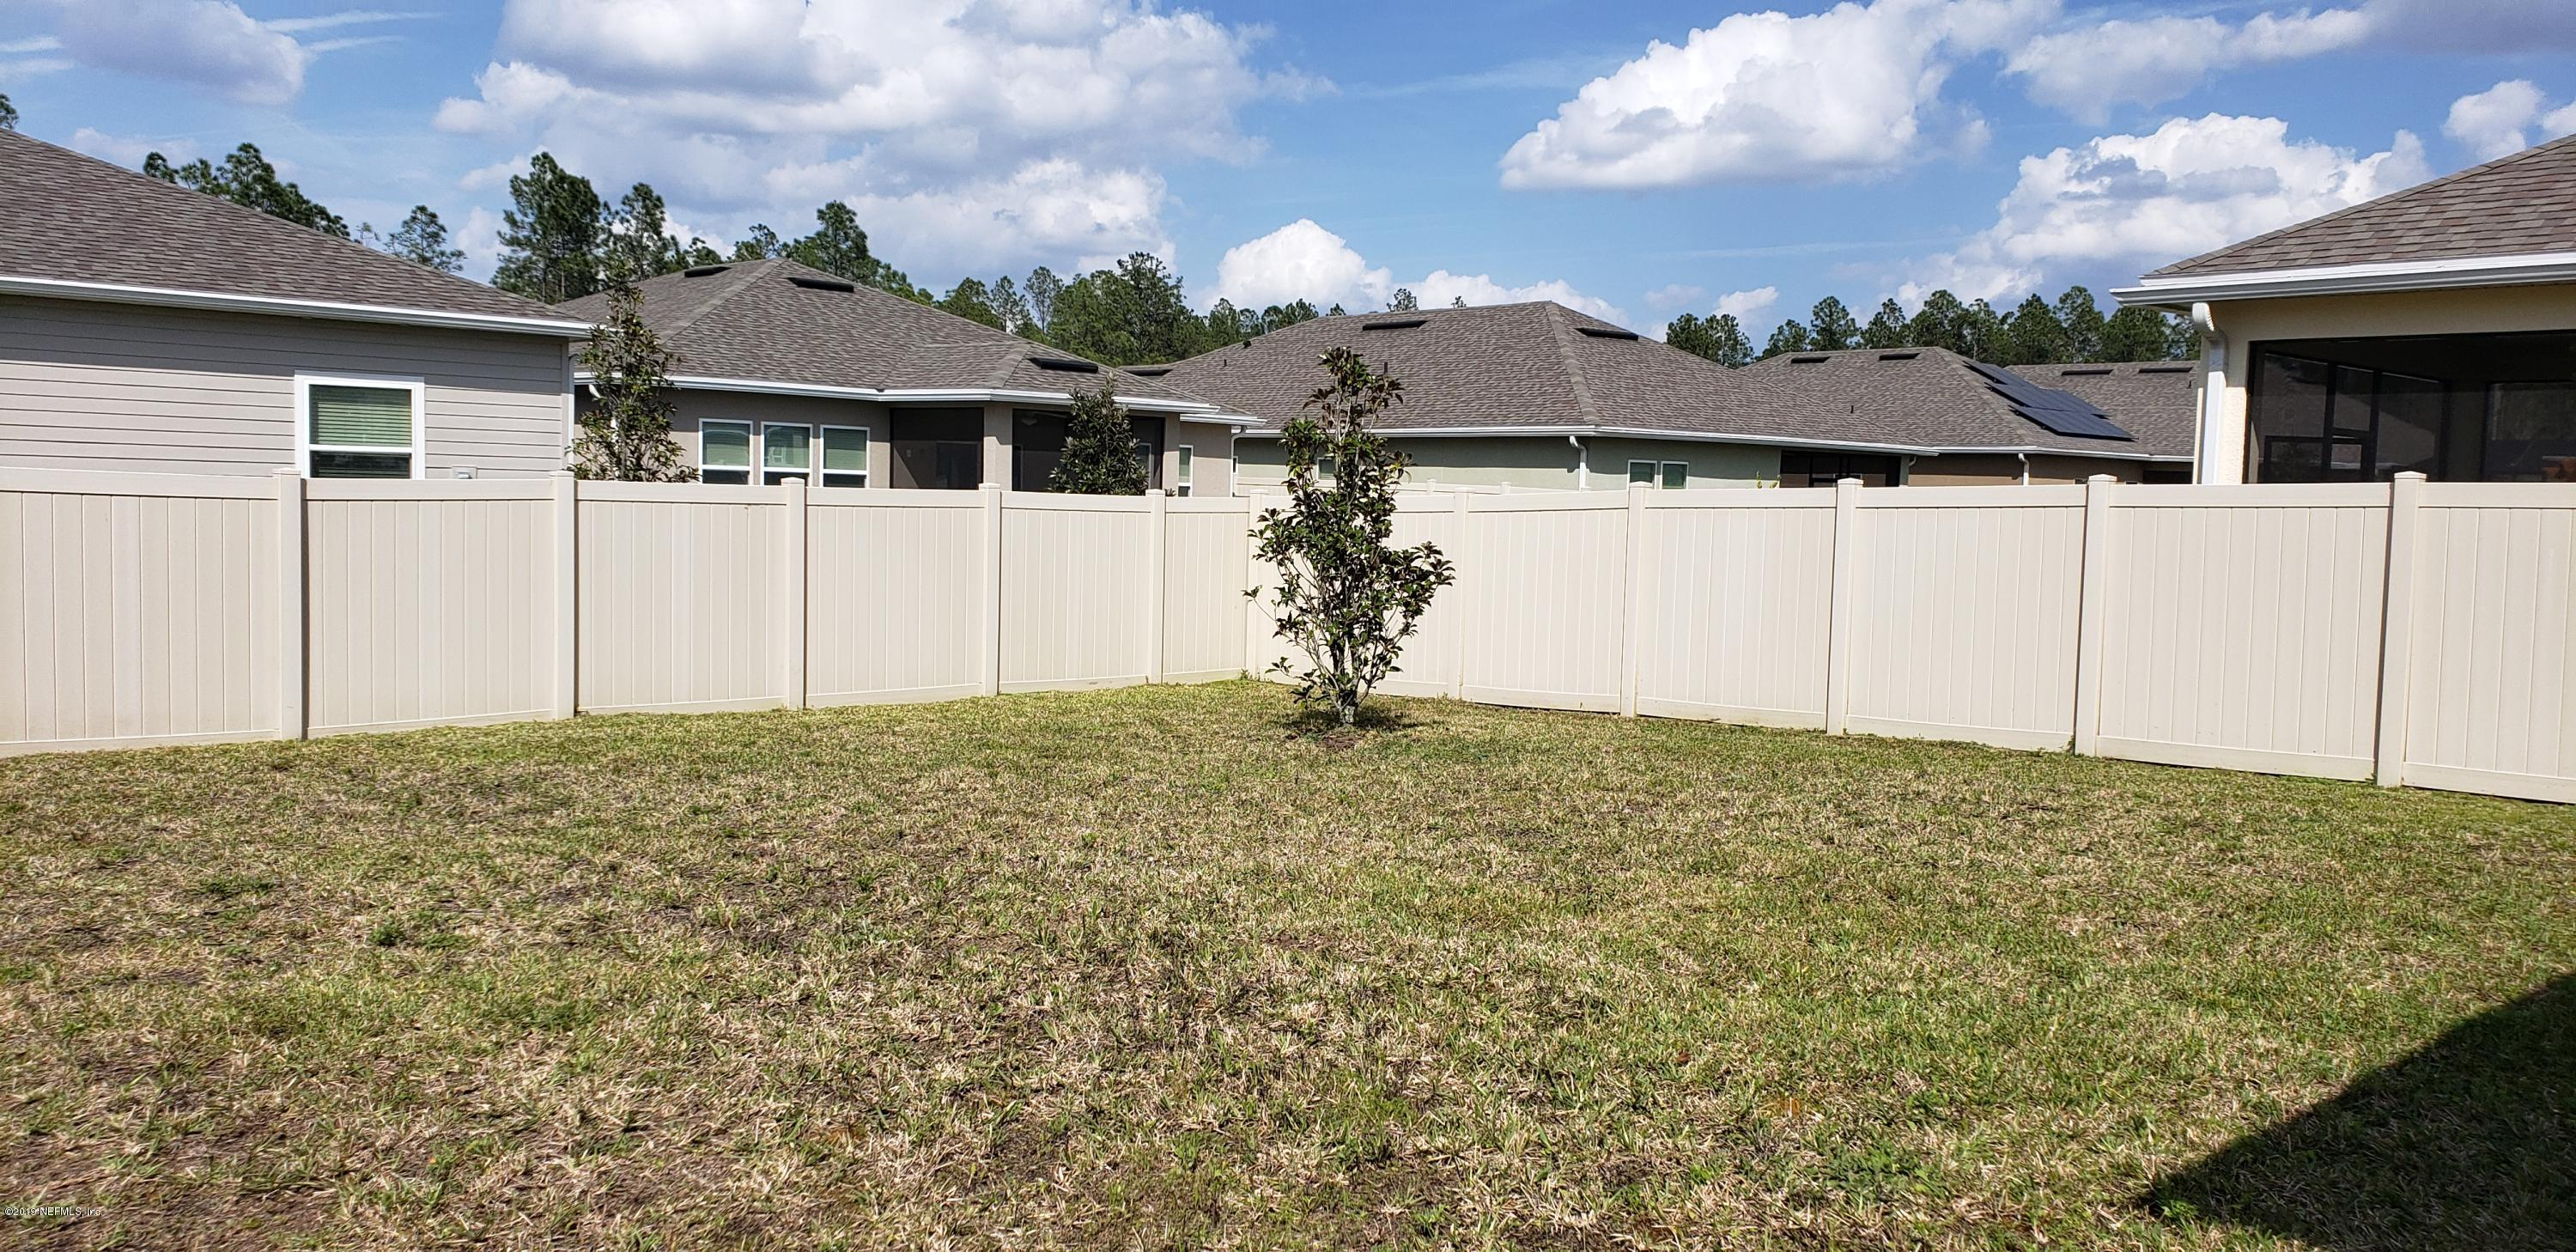 10117 BEDFORD LAKES, JACKSONVILLE, FLORIDA 32222, 4 Bedrooms Bedrooms, ,2 BathroomsBathrooms,Residential - single family,For sale,BEDFORD LAKES,984870